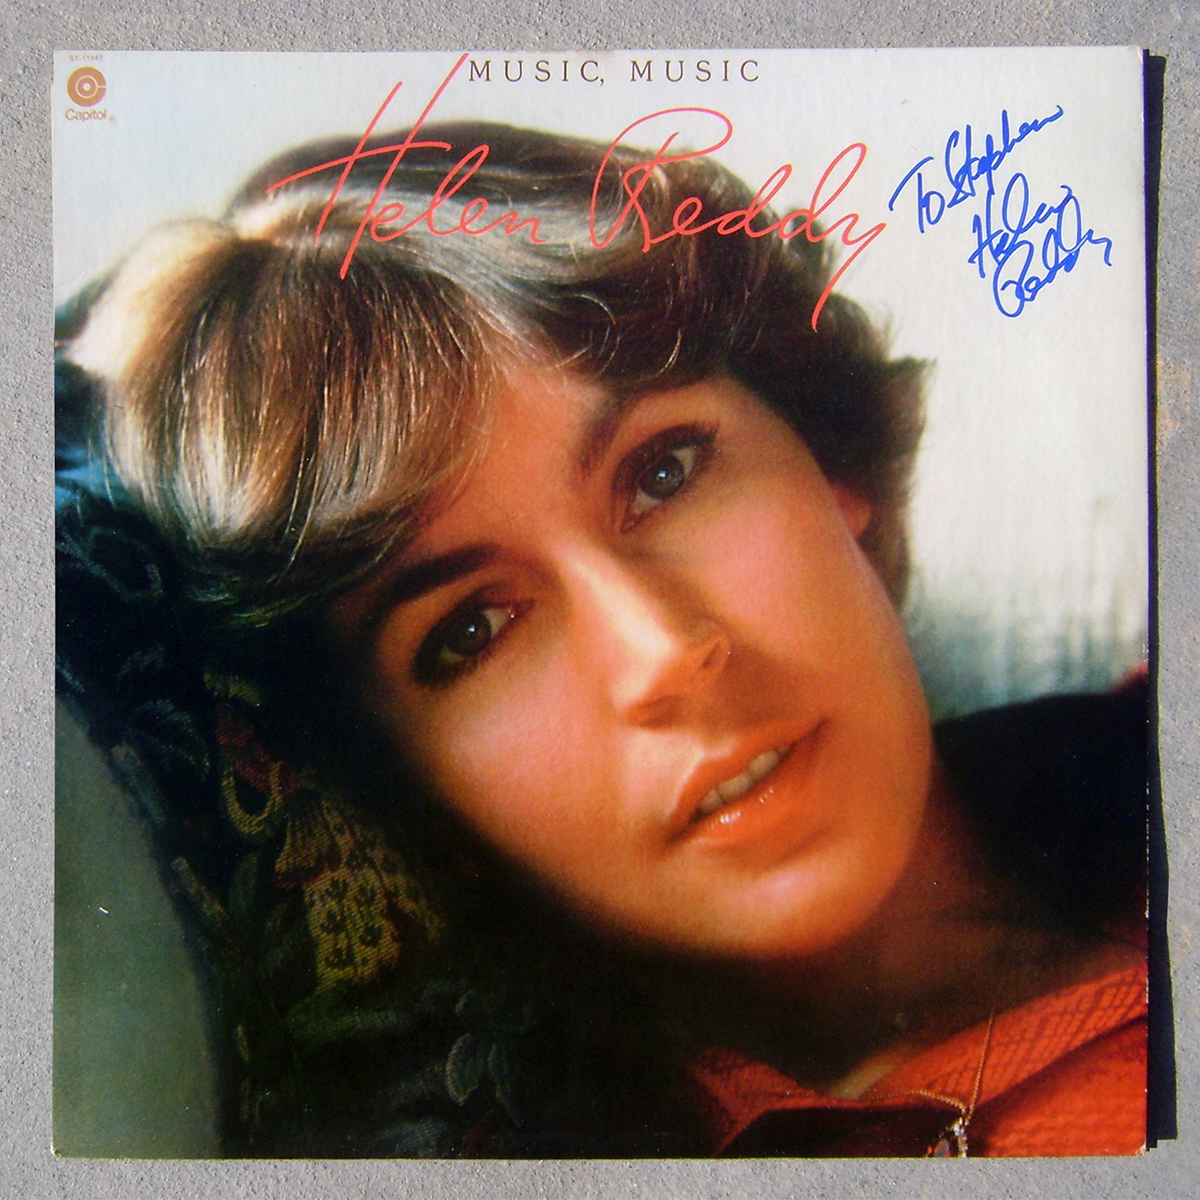 LP - Helen Reddy - Music, Music